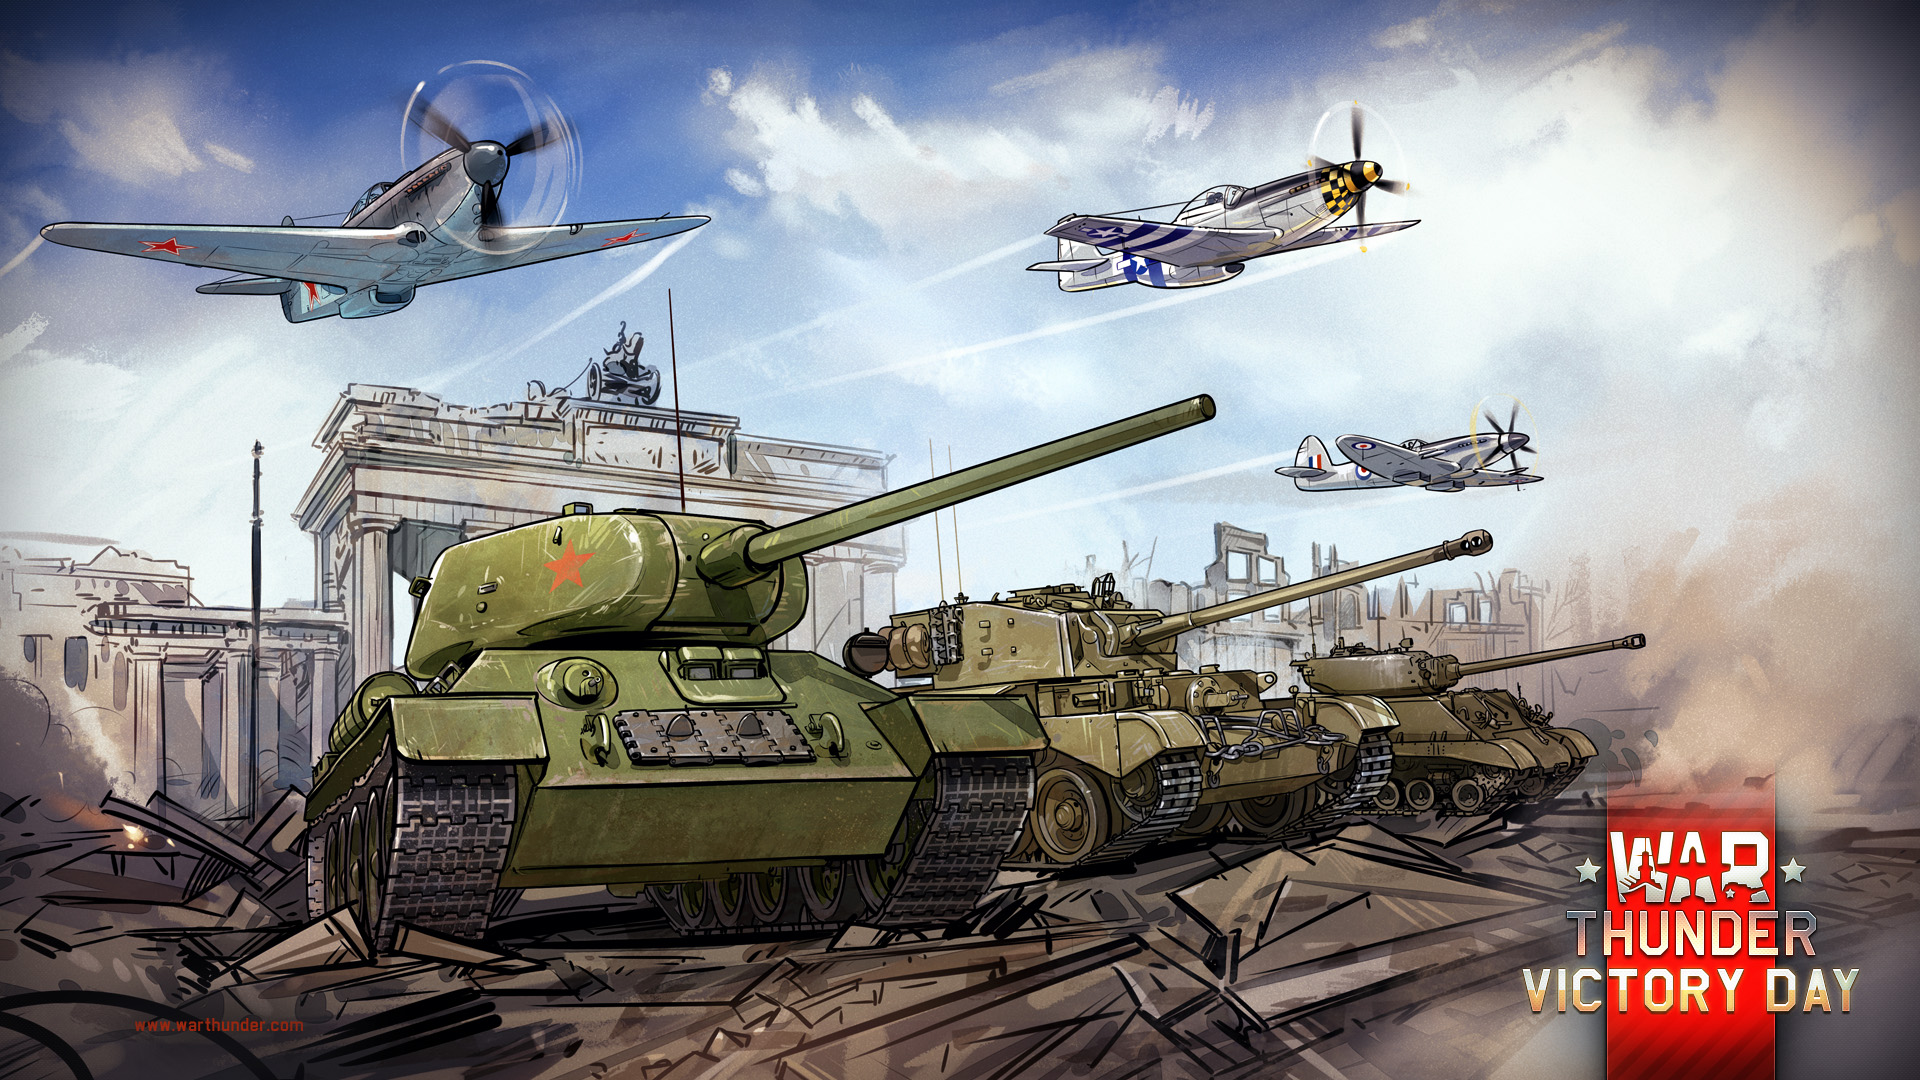 Victory Day Specials in War Thunder